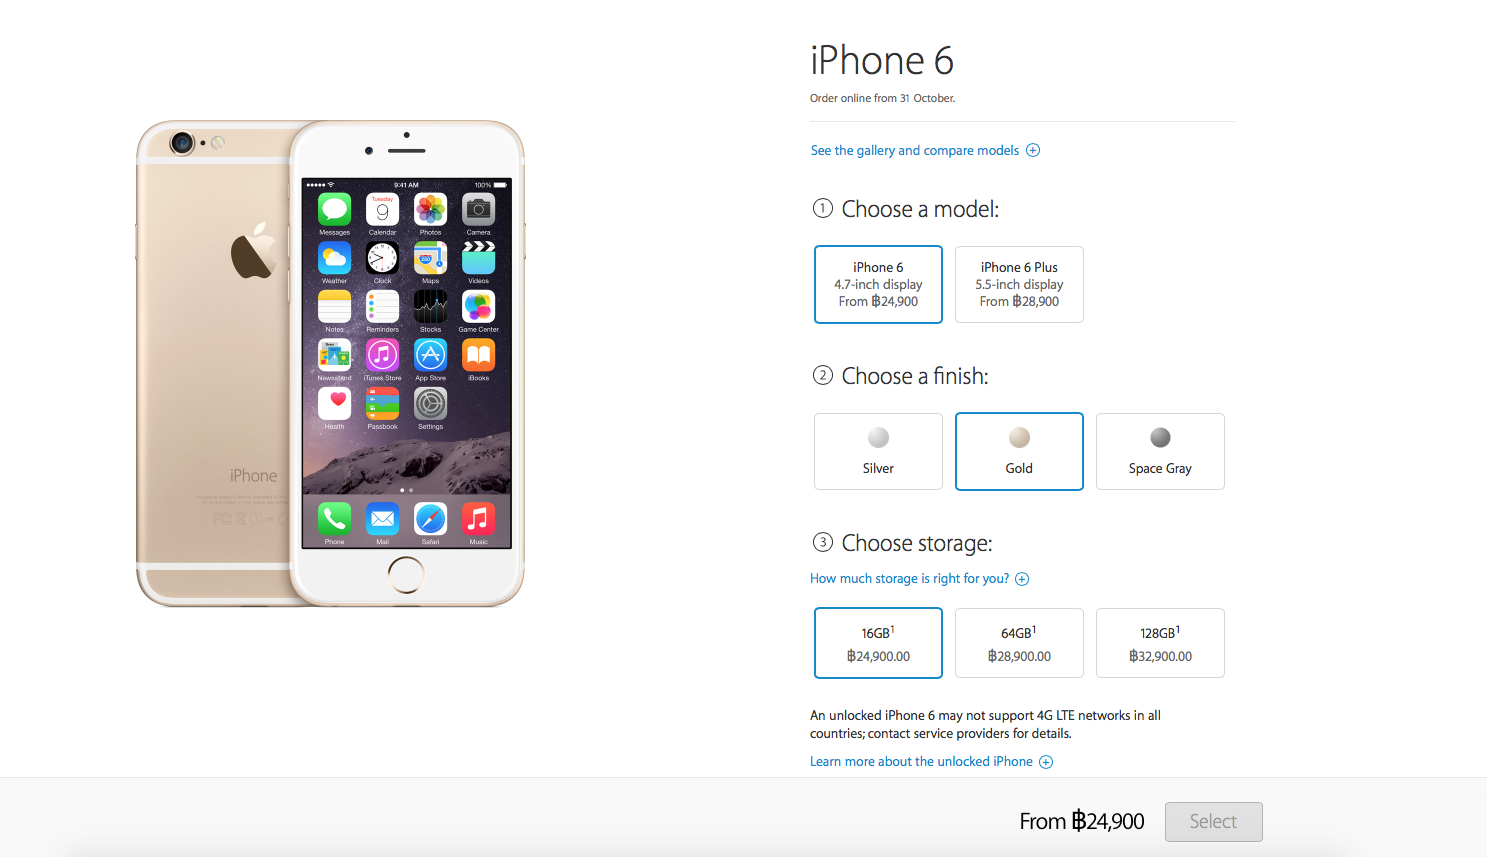 iPhone 6 Apple Online Store Price